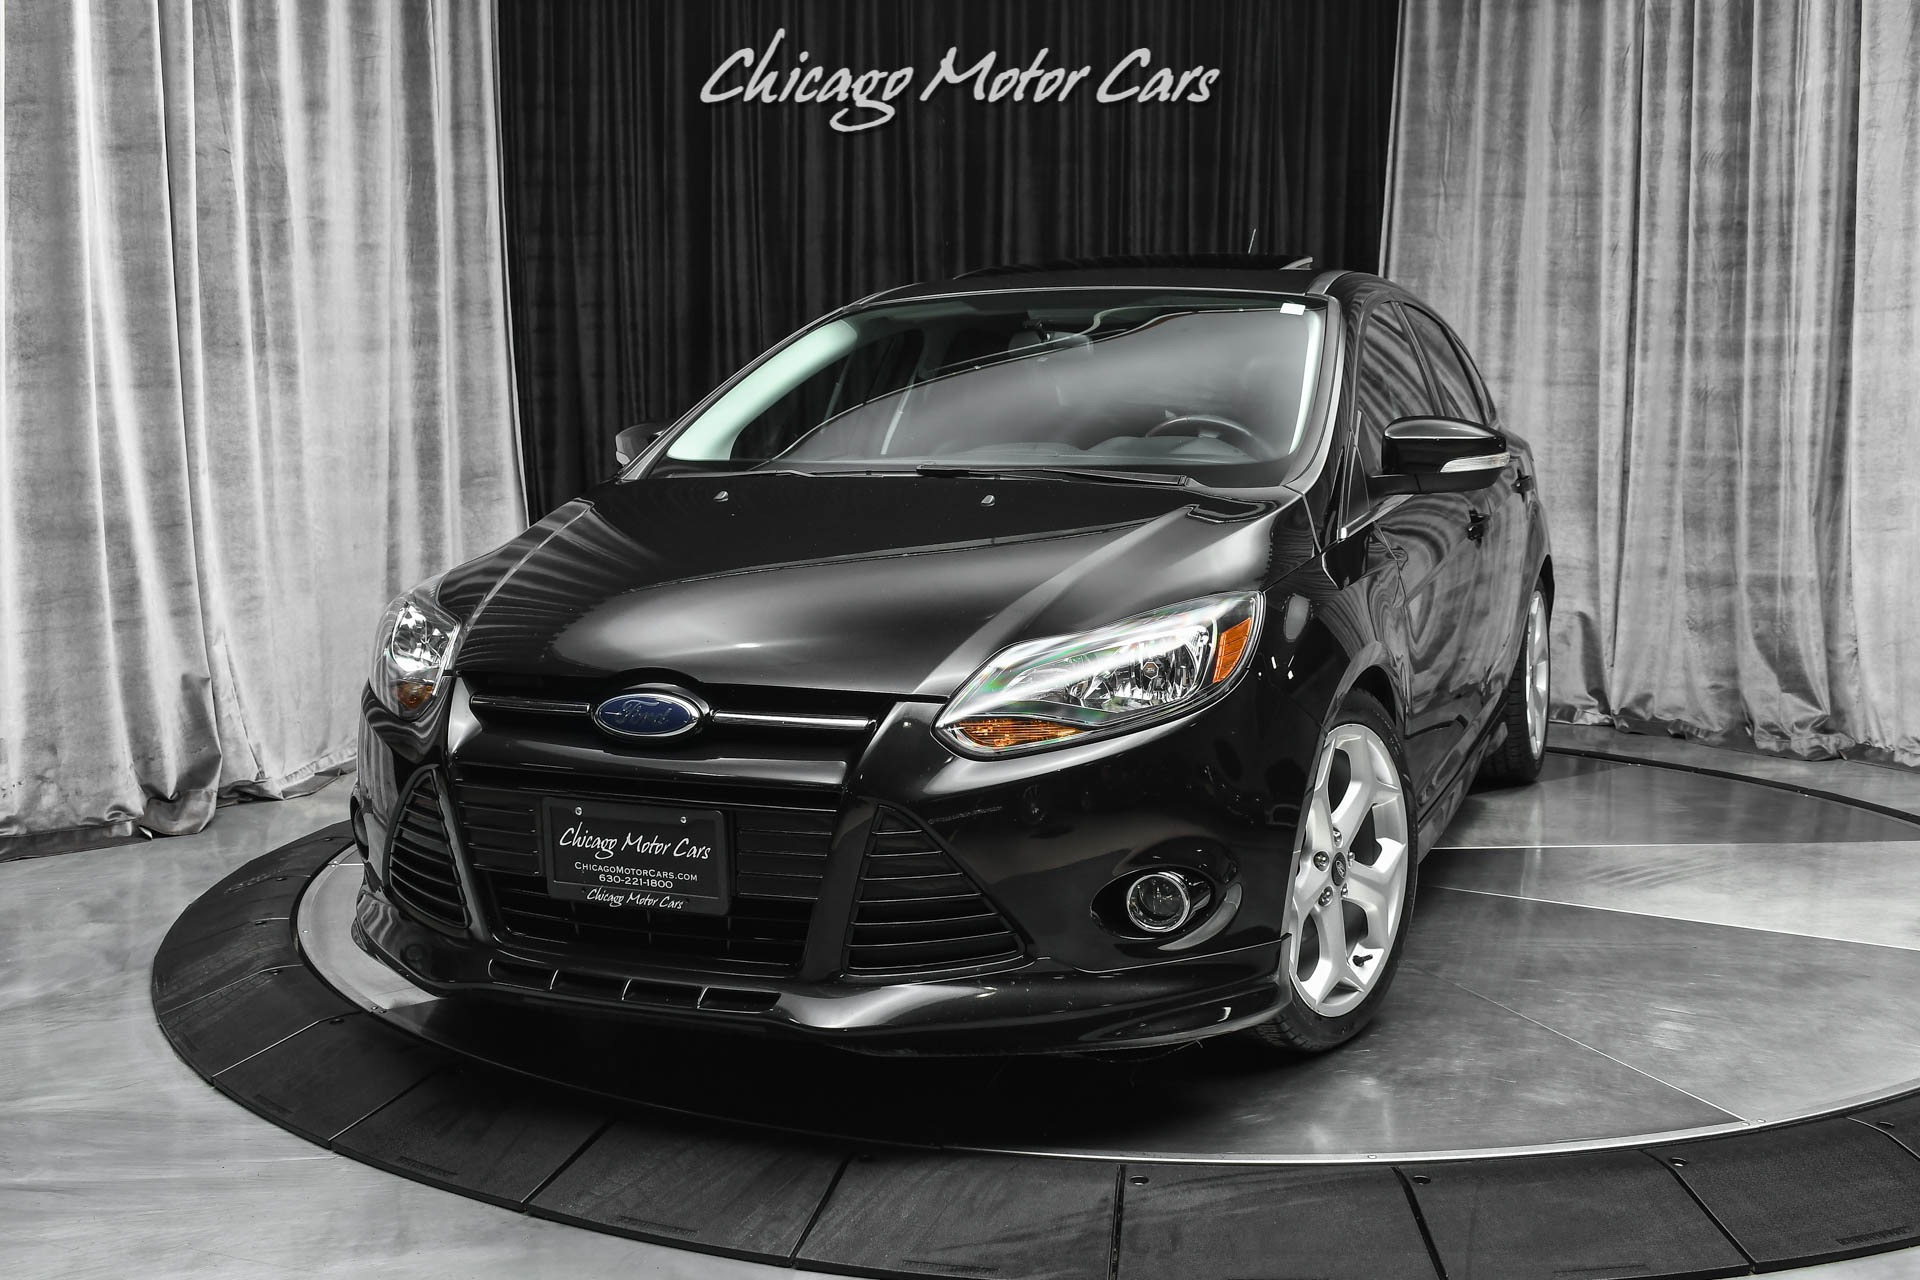 Used-2014-Ford-Focus-Titanium-Hatchback-TASTEFULLY-MODIFIED-ONLY-39K-MILES